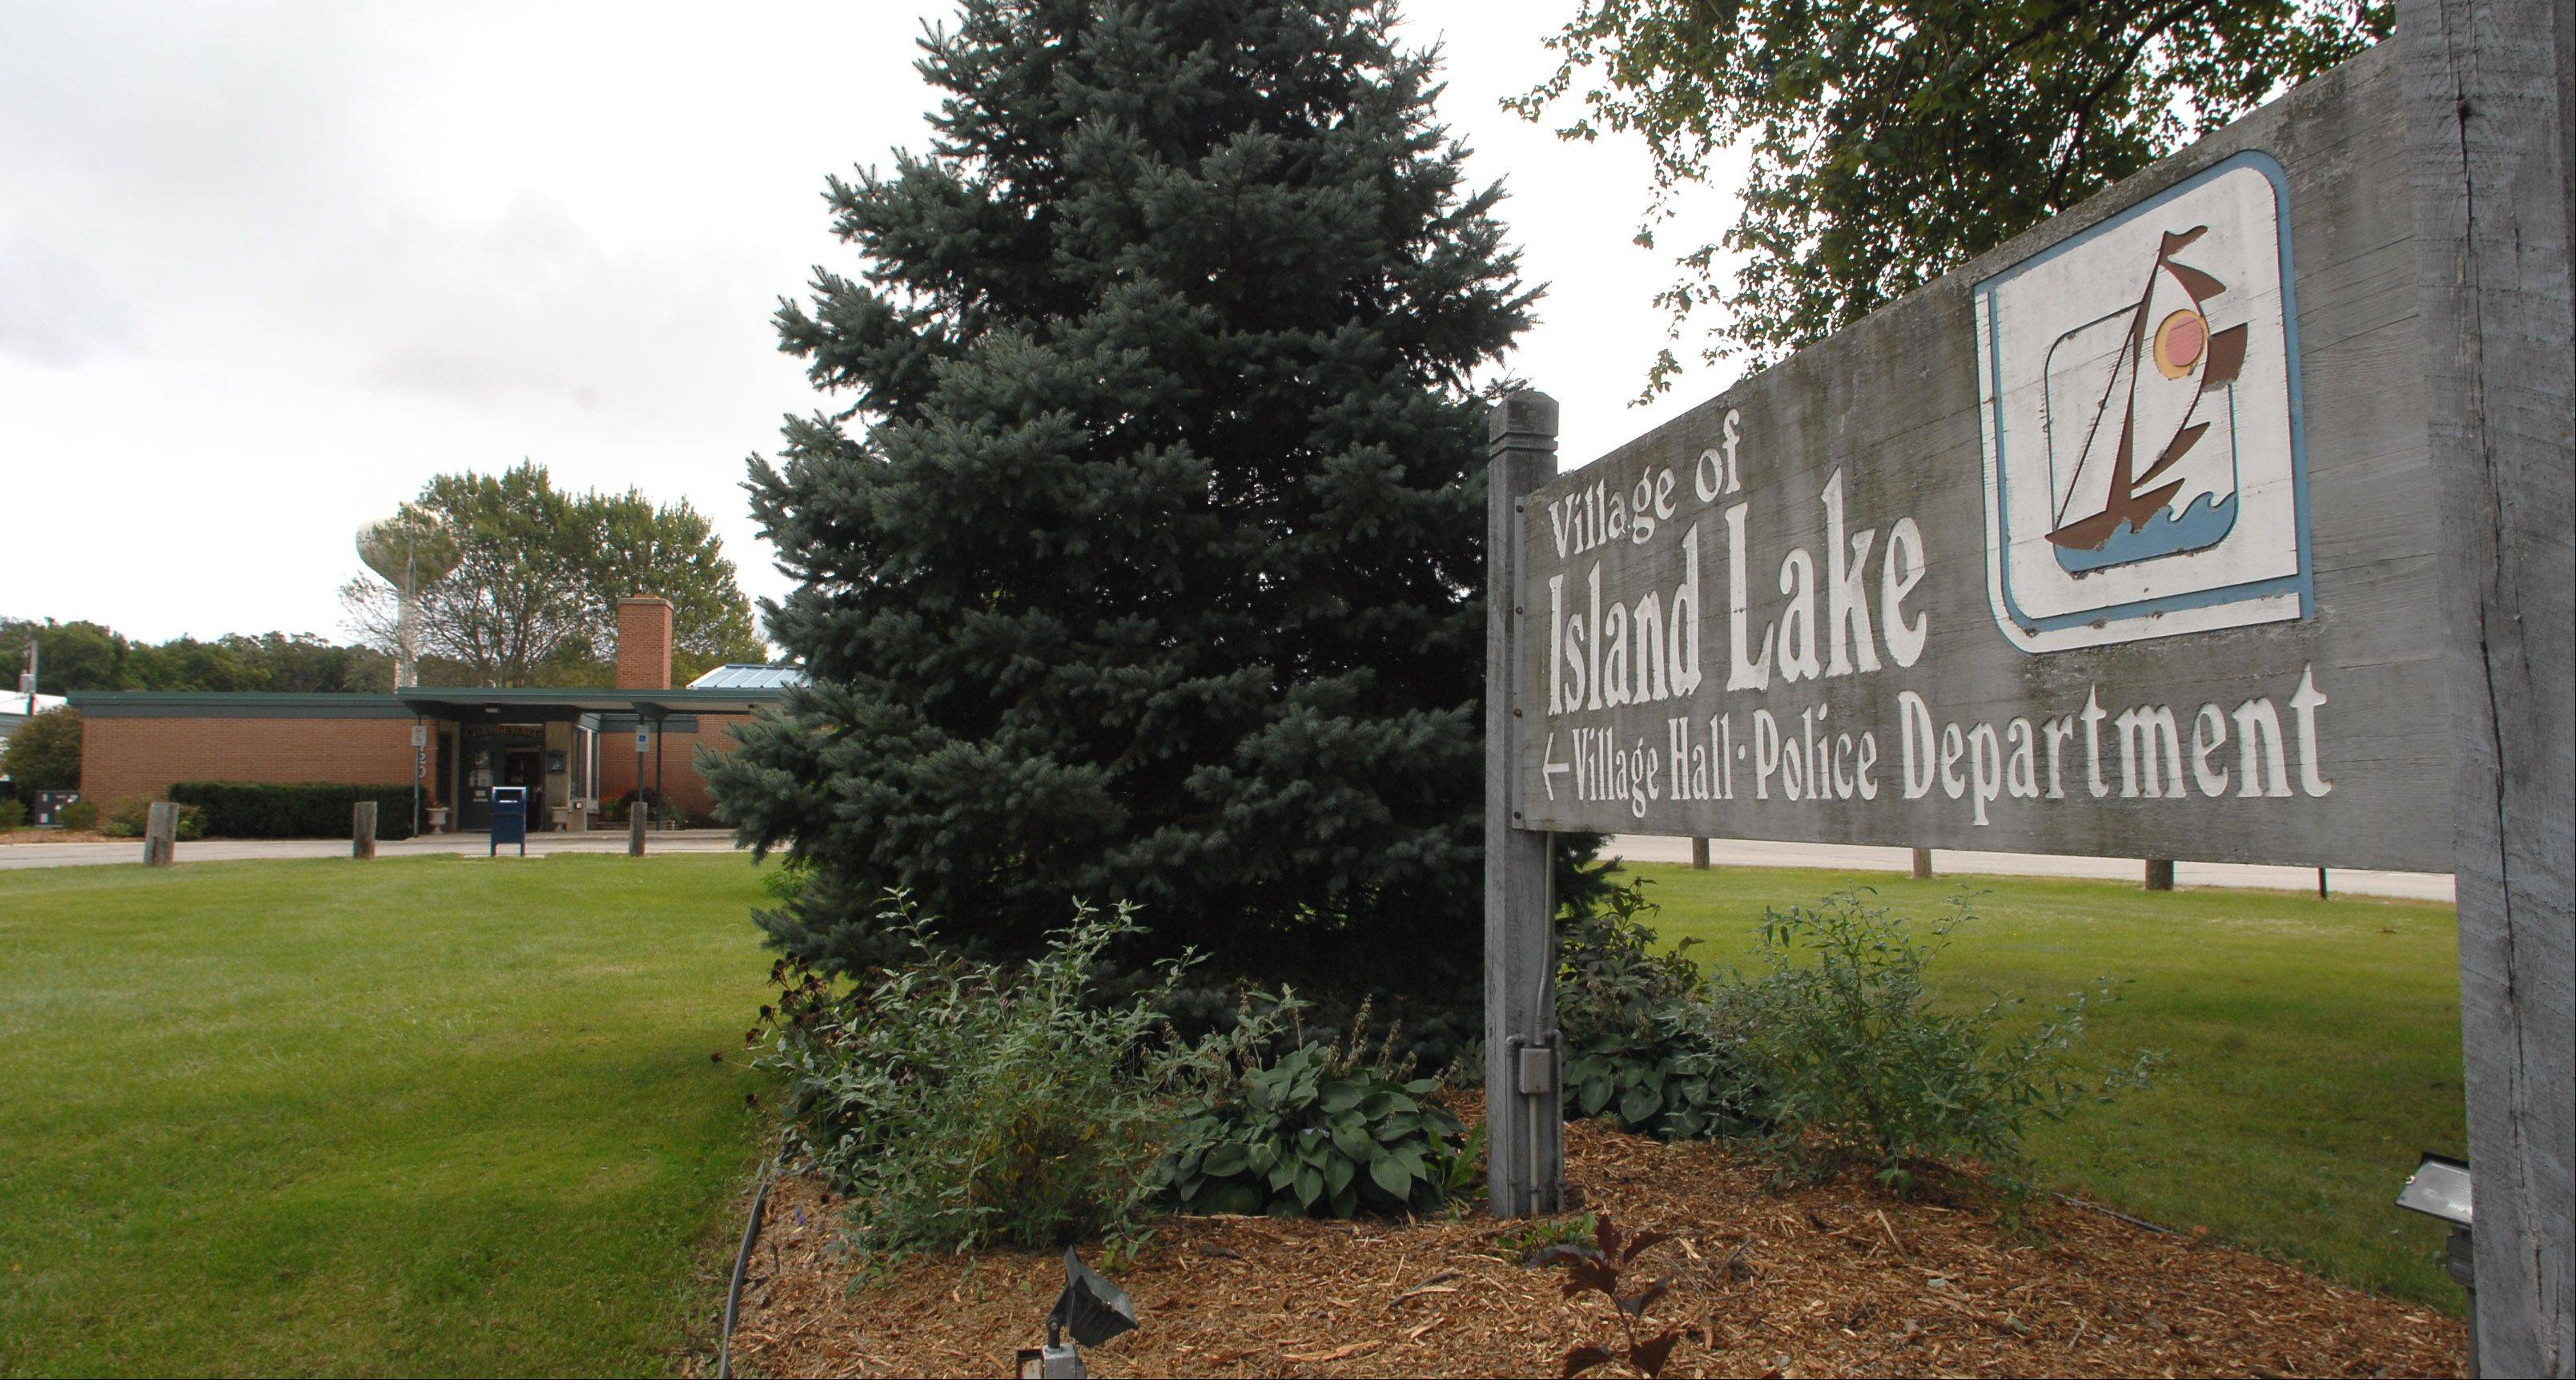 The attorney general�s office has dismissed complaints from an ex-cop about Island Lake�s Facebook page.